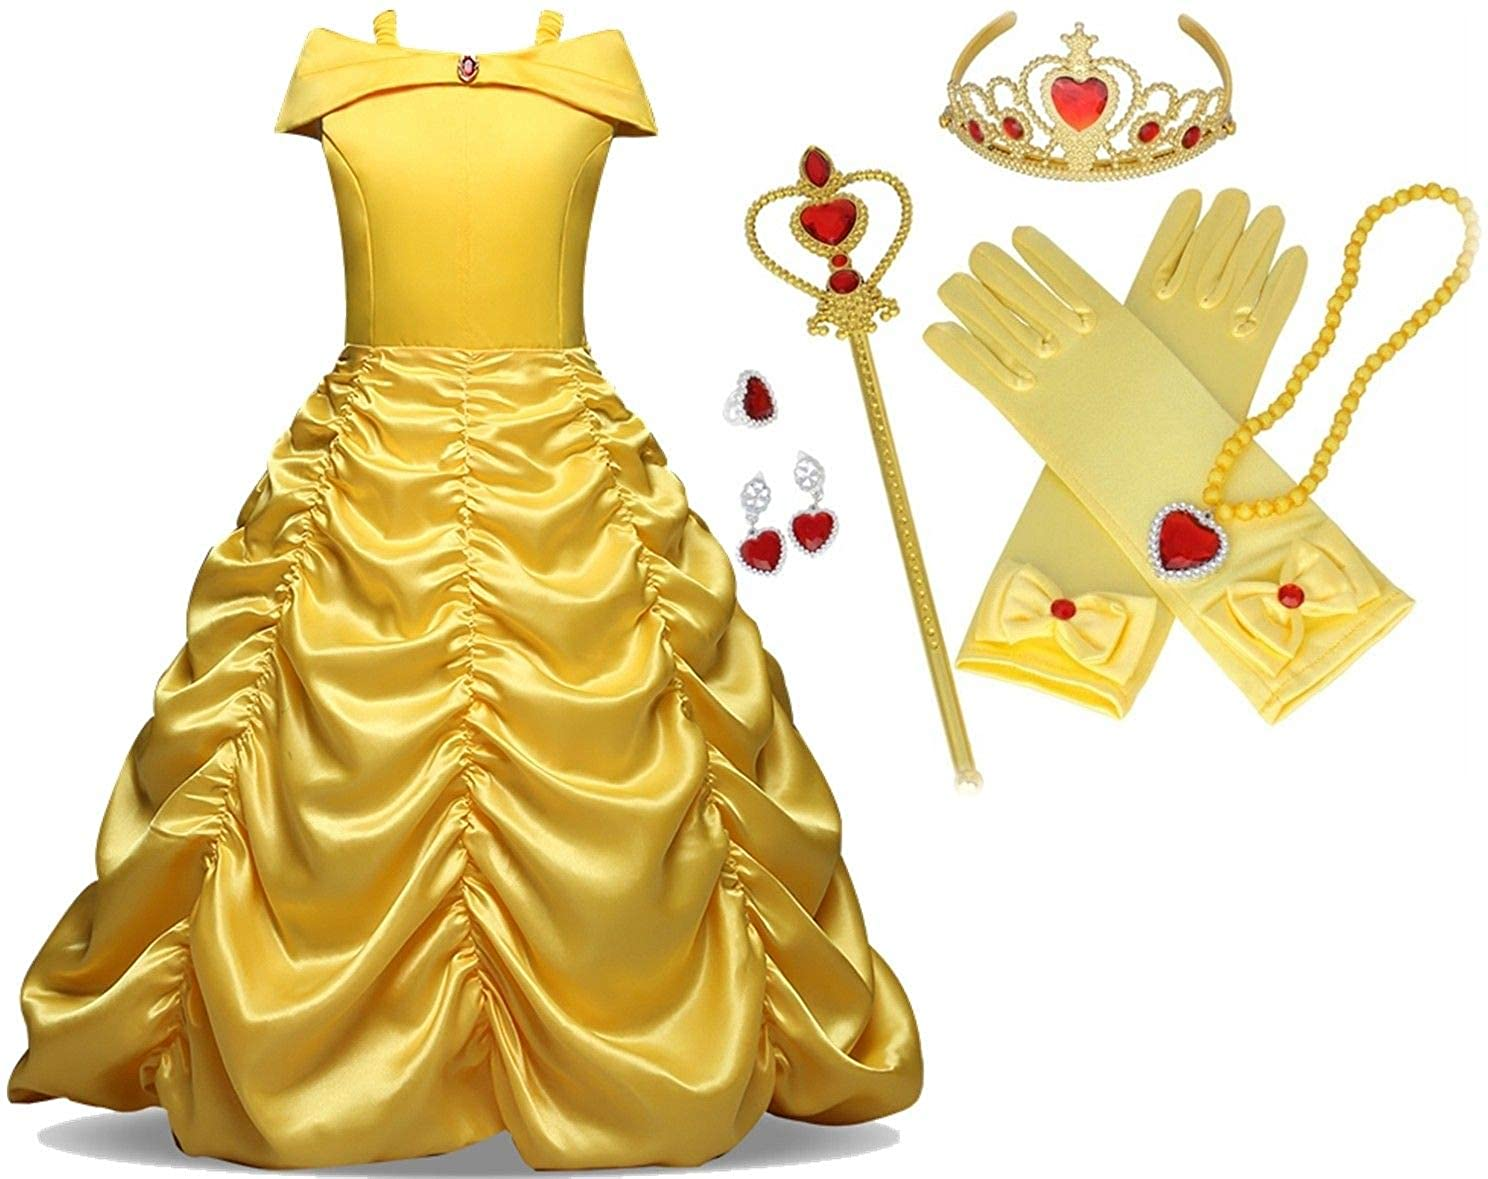 Little Kid Beauty Gown Princess Belle Costume Halloween Party Cosplay Girls 7 PC Dress Set, Size 9-10 Yellow